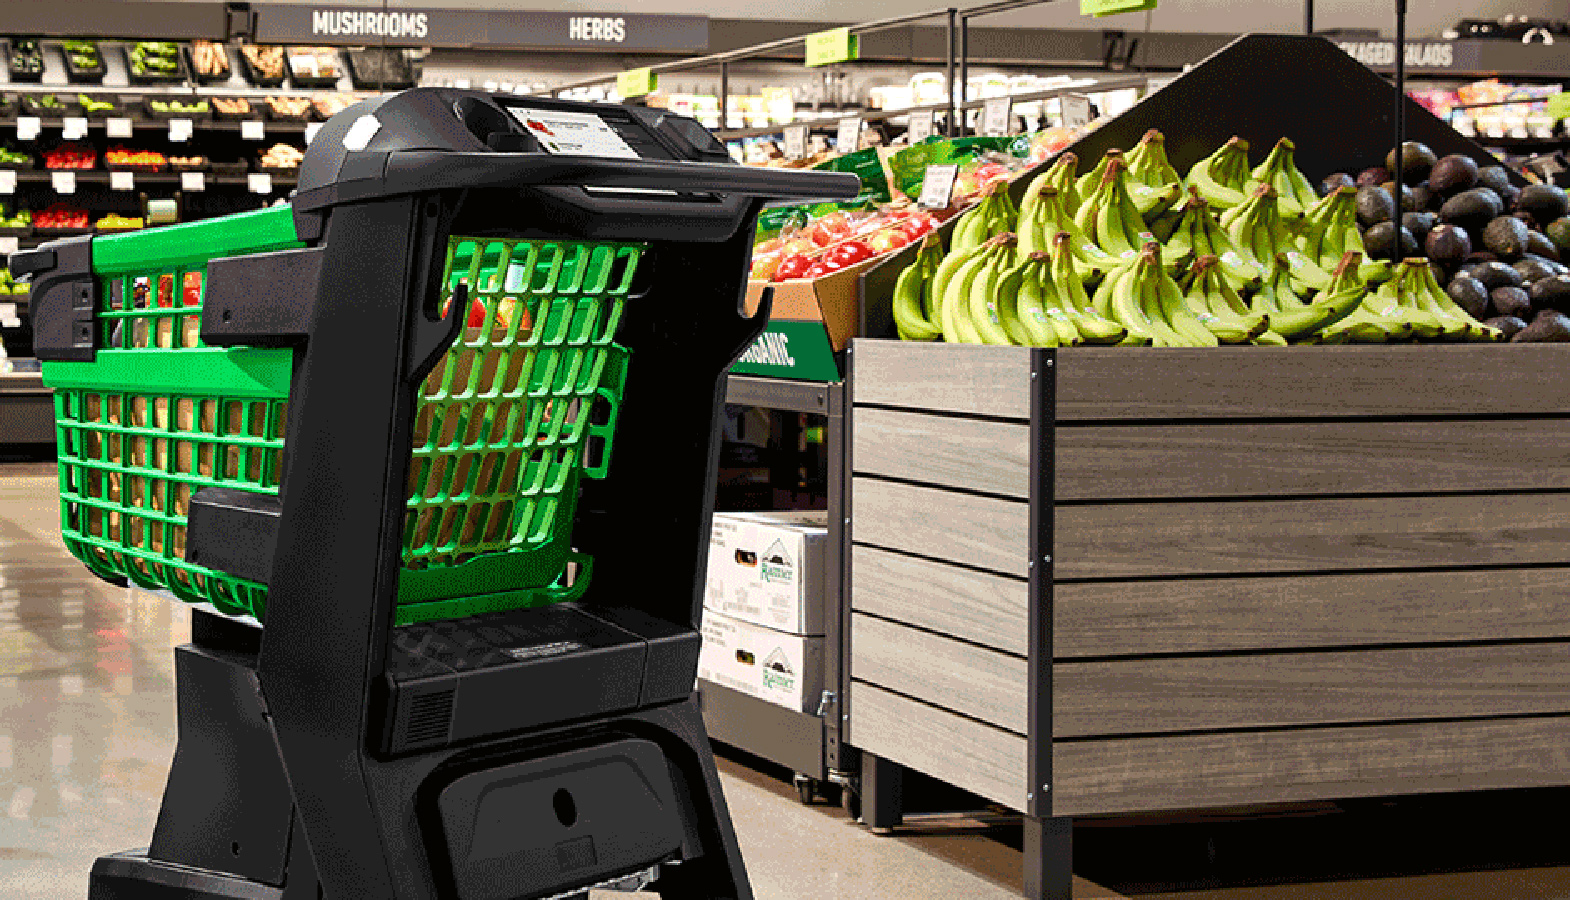 Amazon's Smart Grocery Carts Will Replace Cashiers In 2020